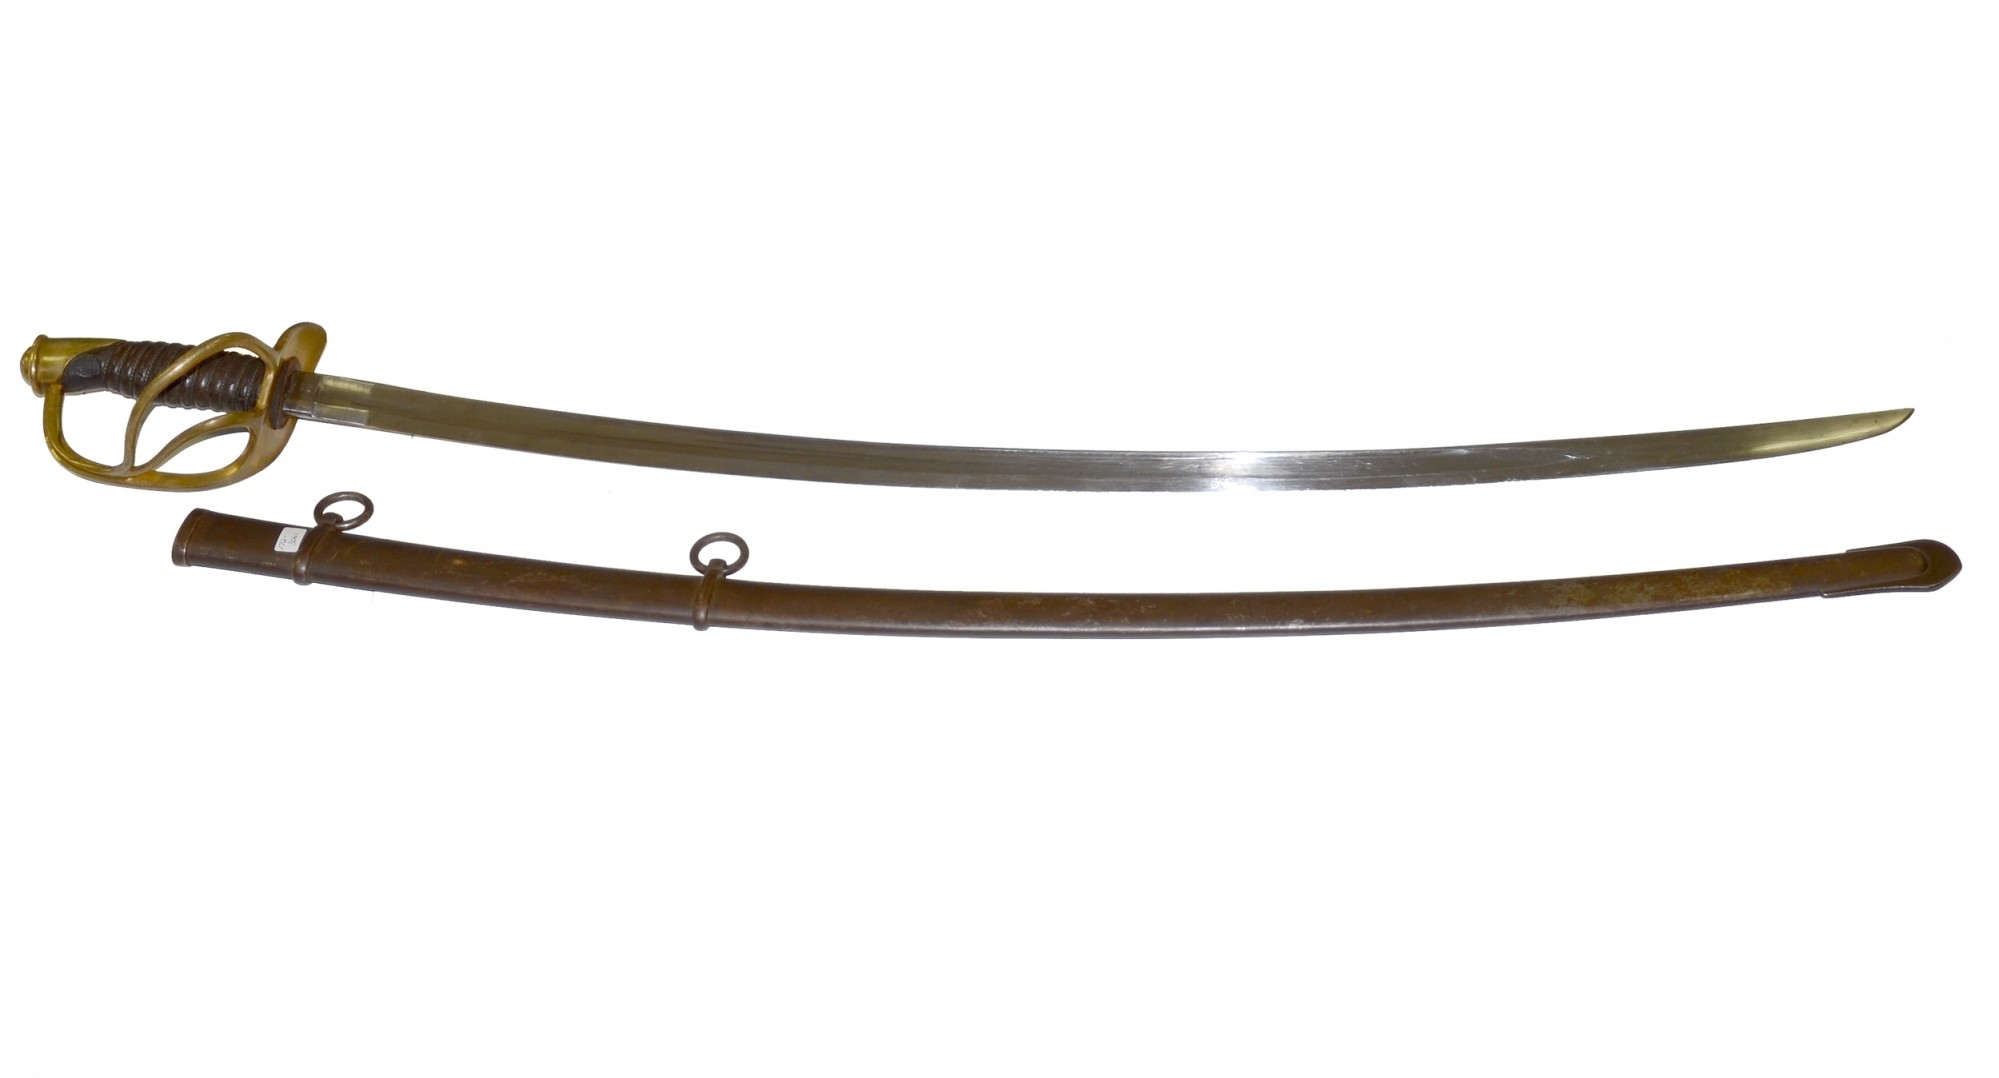 US MODEL 1860 ENLISTED CAVALRY SABER, DATED 1865